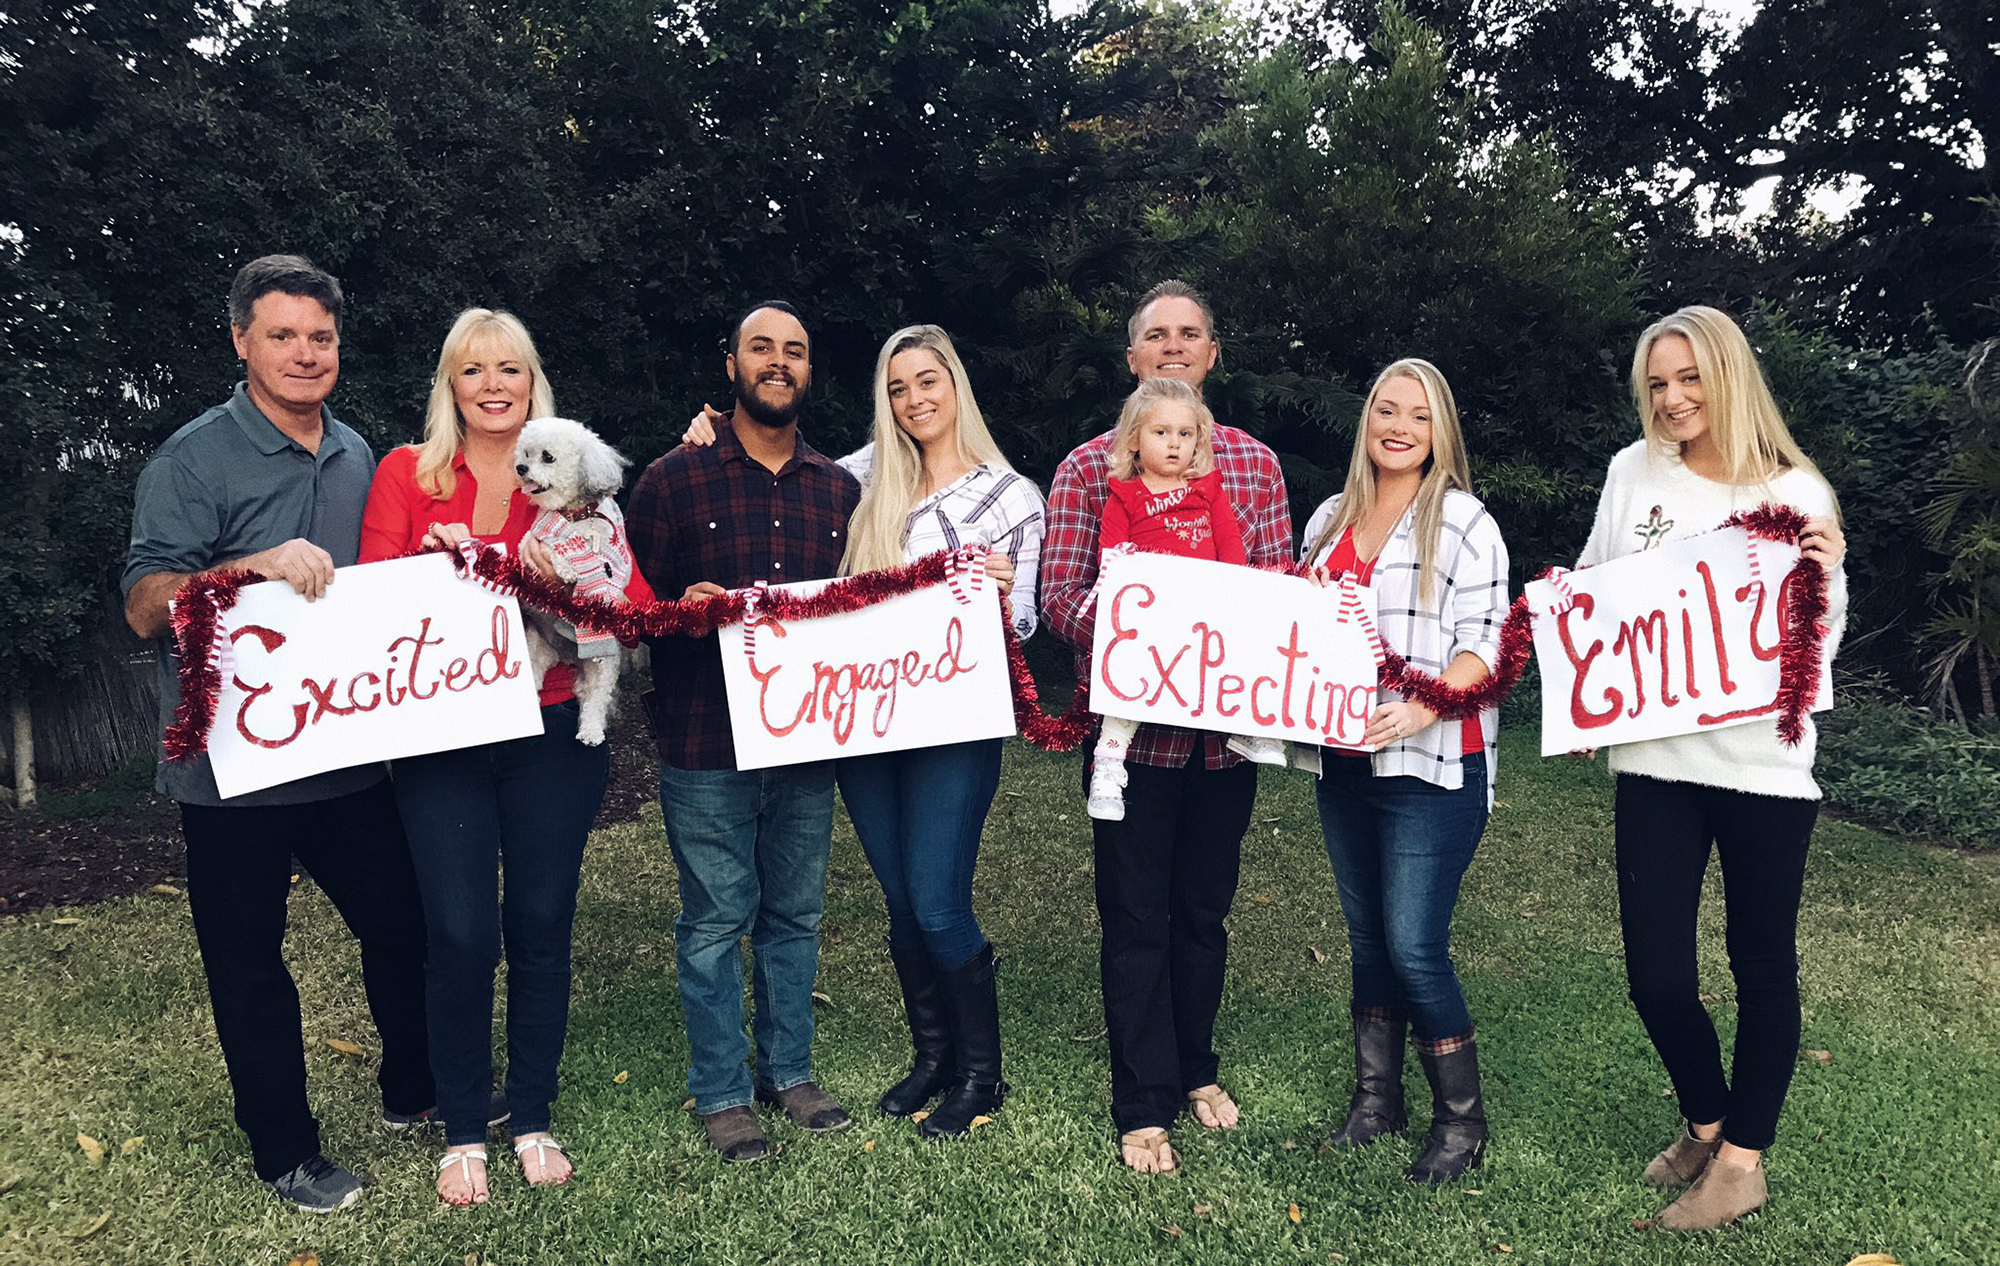 Daughter Embraces Her Single Status In Hilarious Family Christmas Card People Com